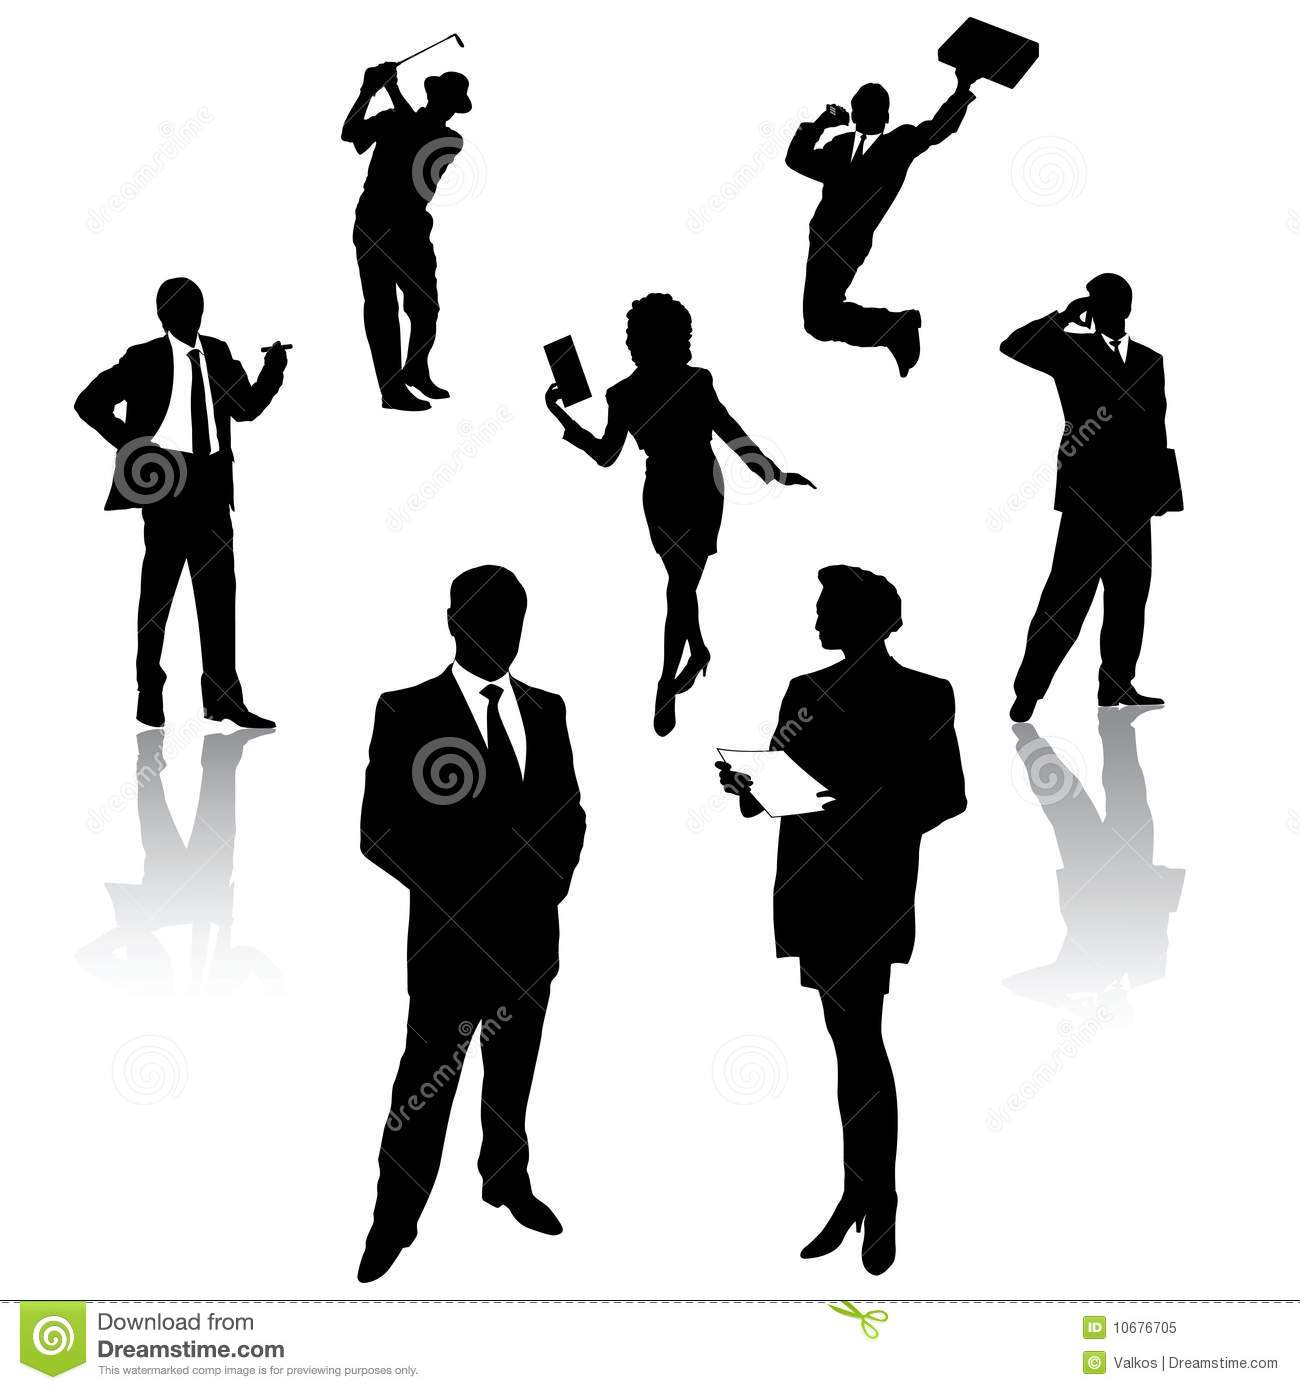 Silhouette Of Business People Royalty Free Stock Photo ...